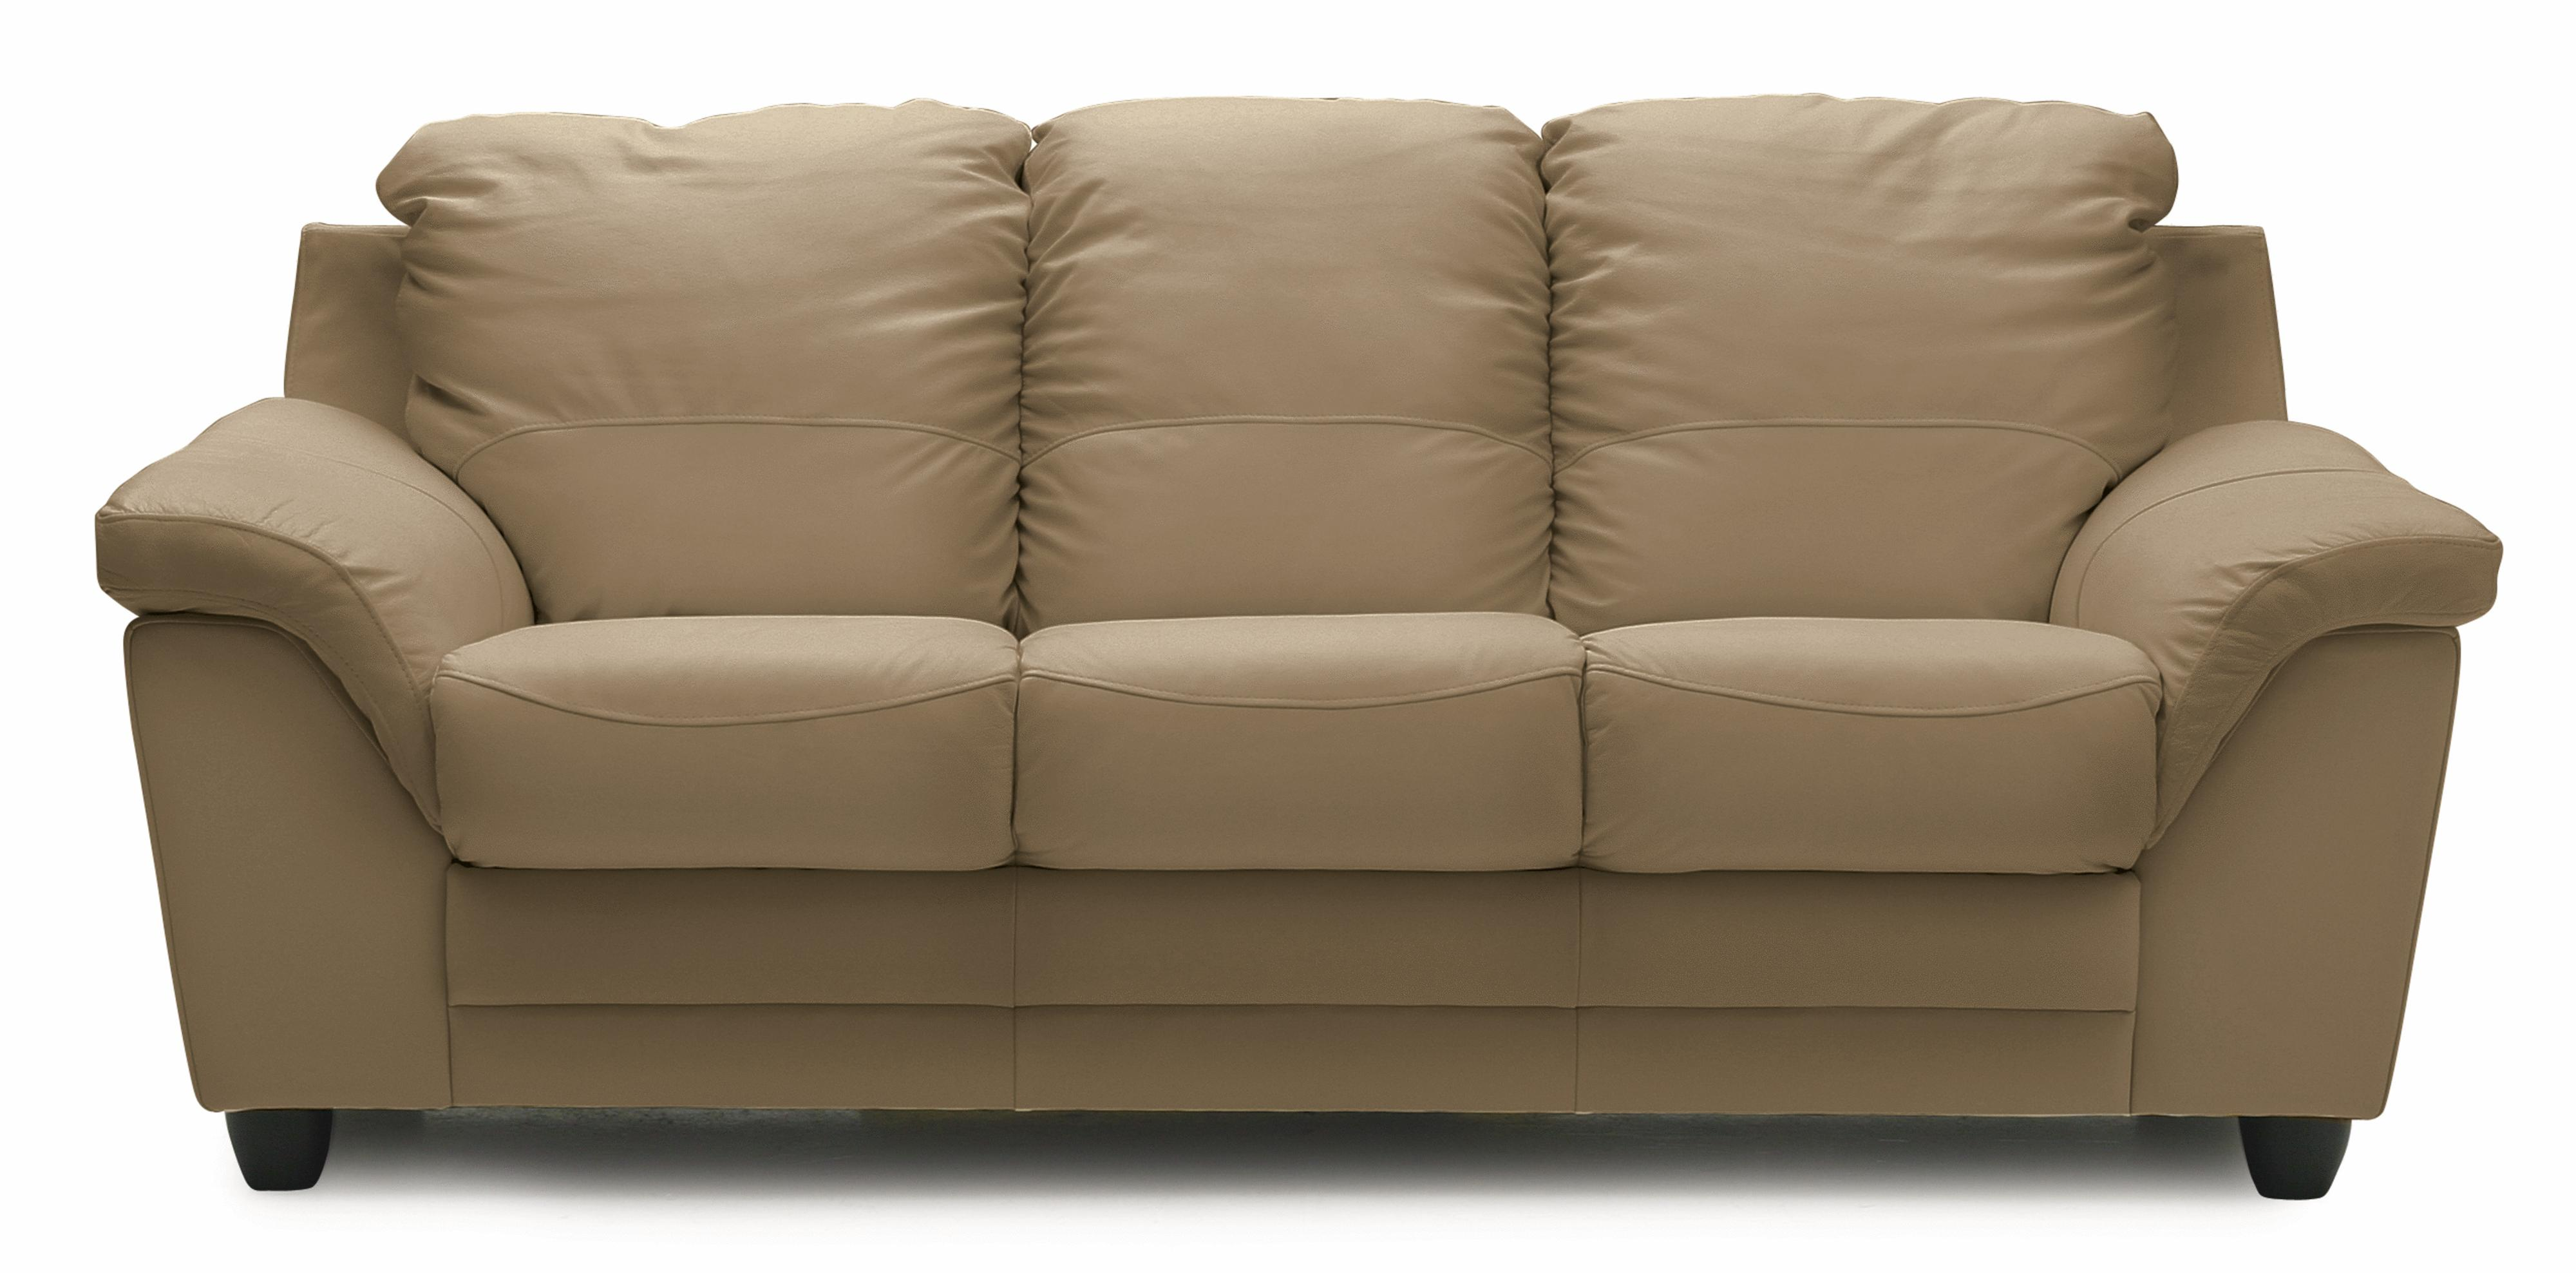 palliser stationary sofas sofa florence italy sirus casual with sloped pillow arms ahfa